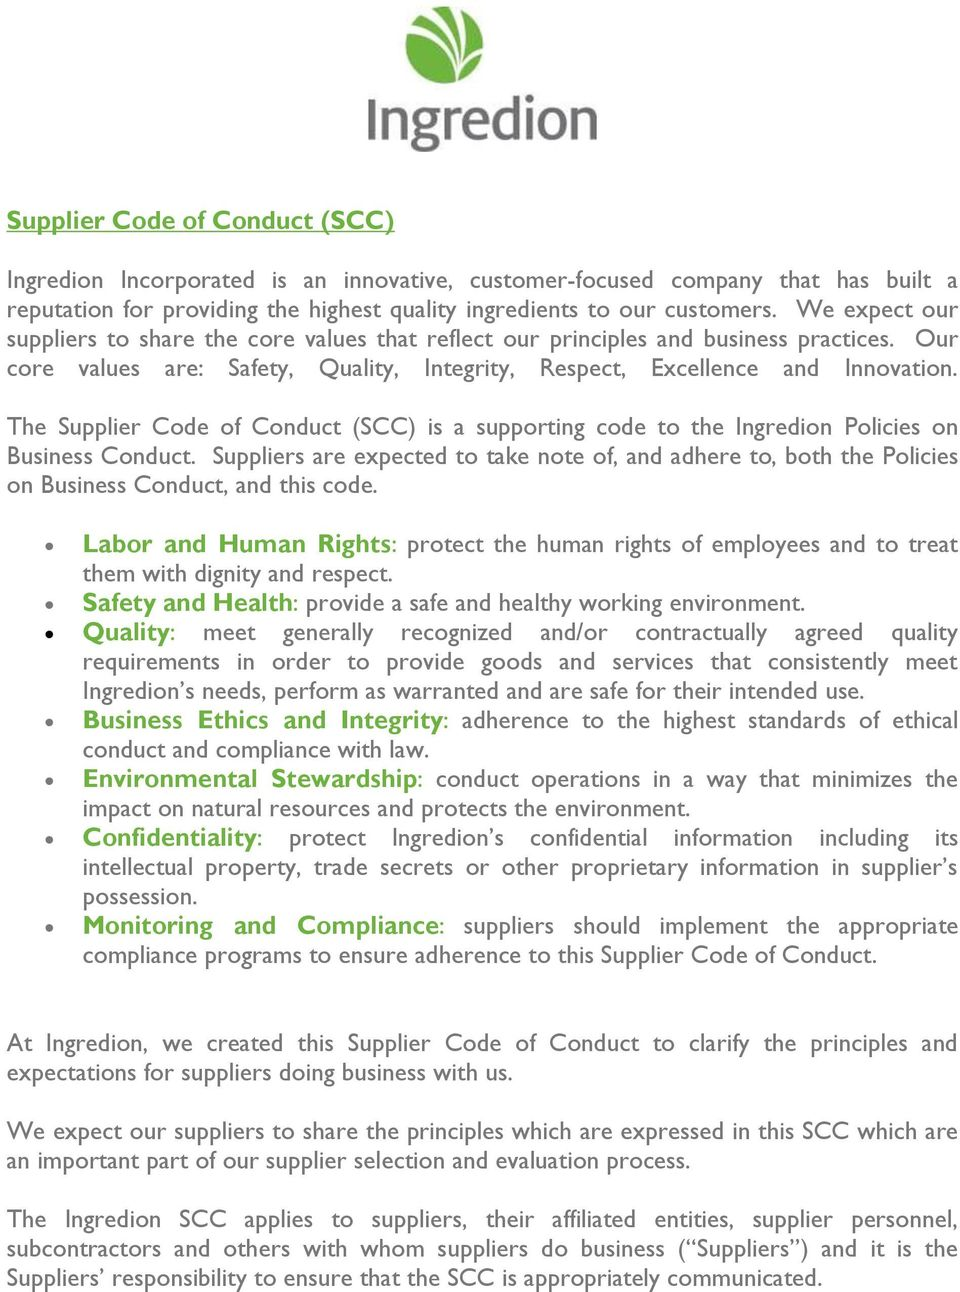 The Supplier Code of Conduct (SCC) is a supporting code to the Ingredion Policies on Business Conduct.